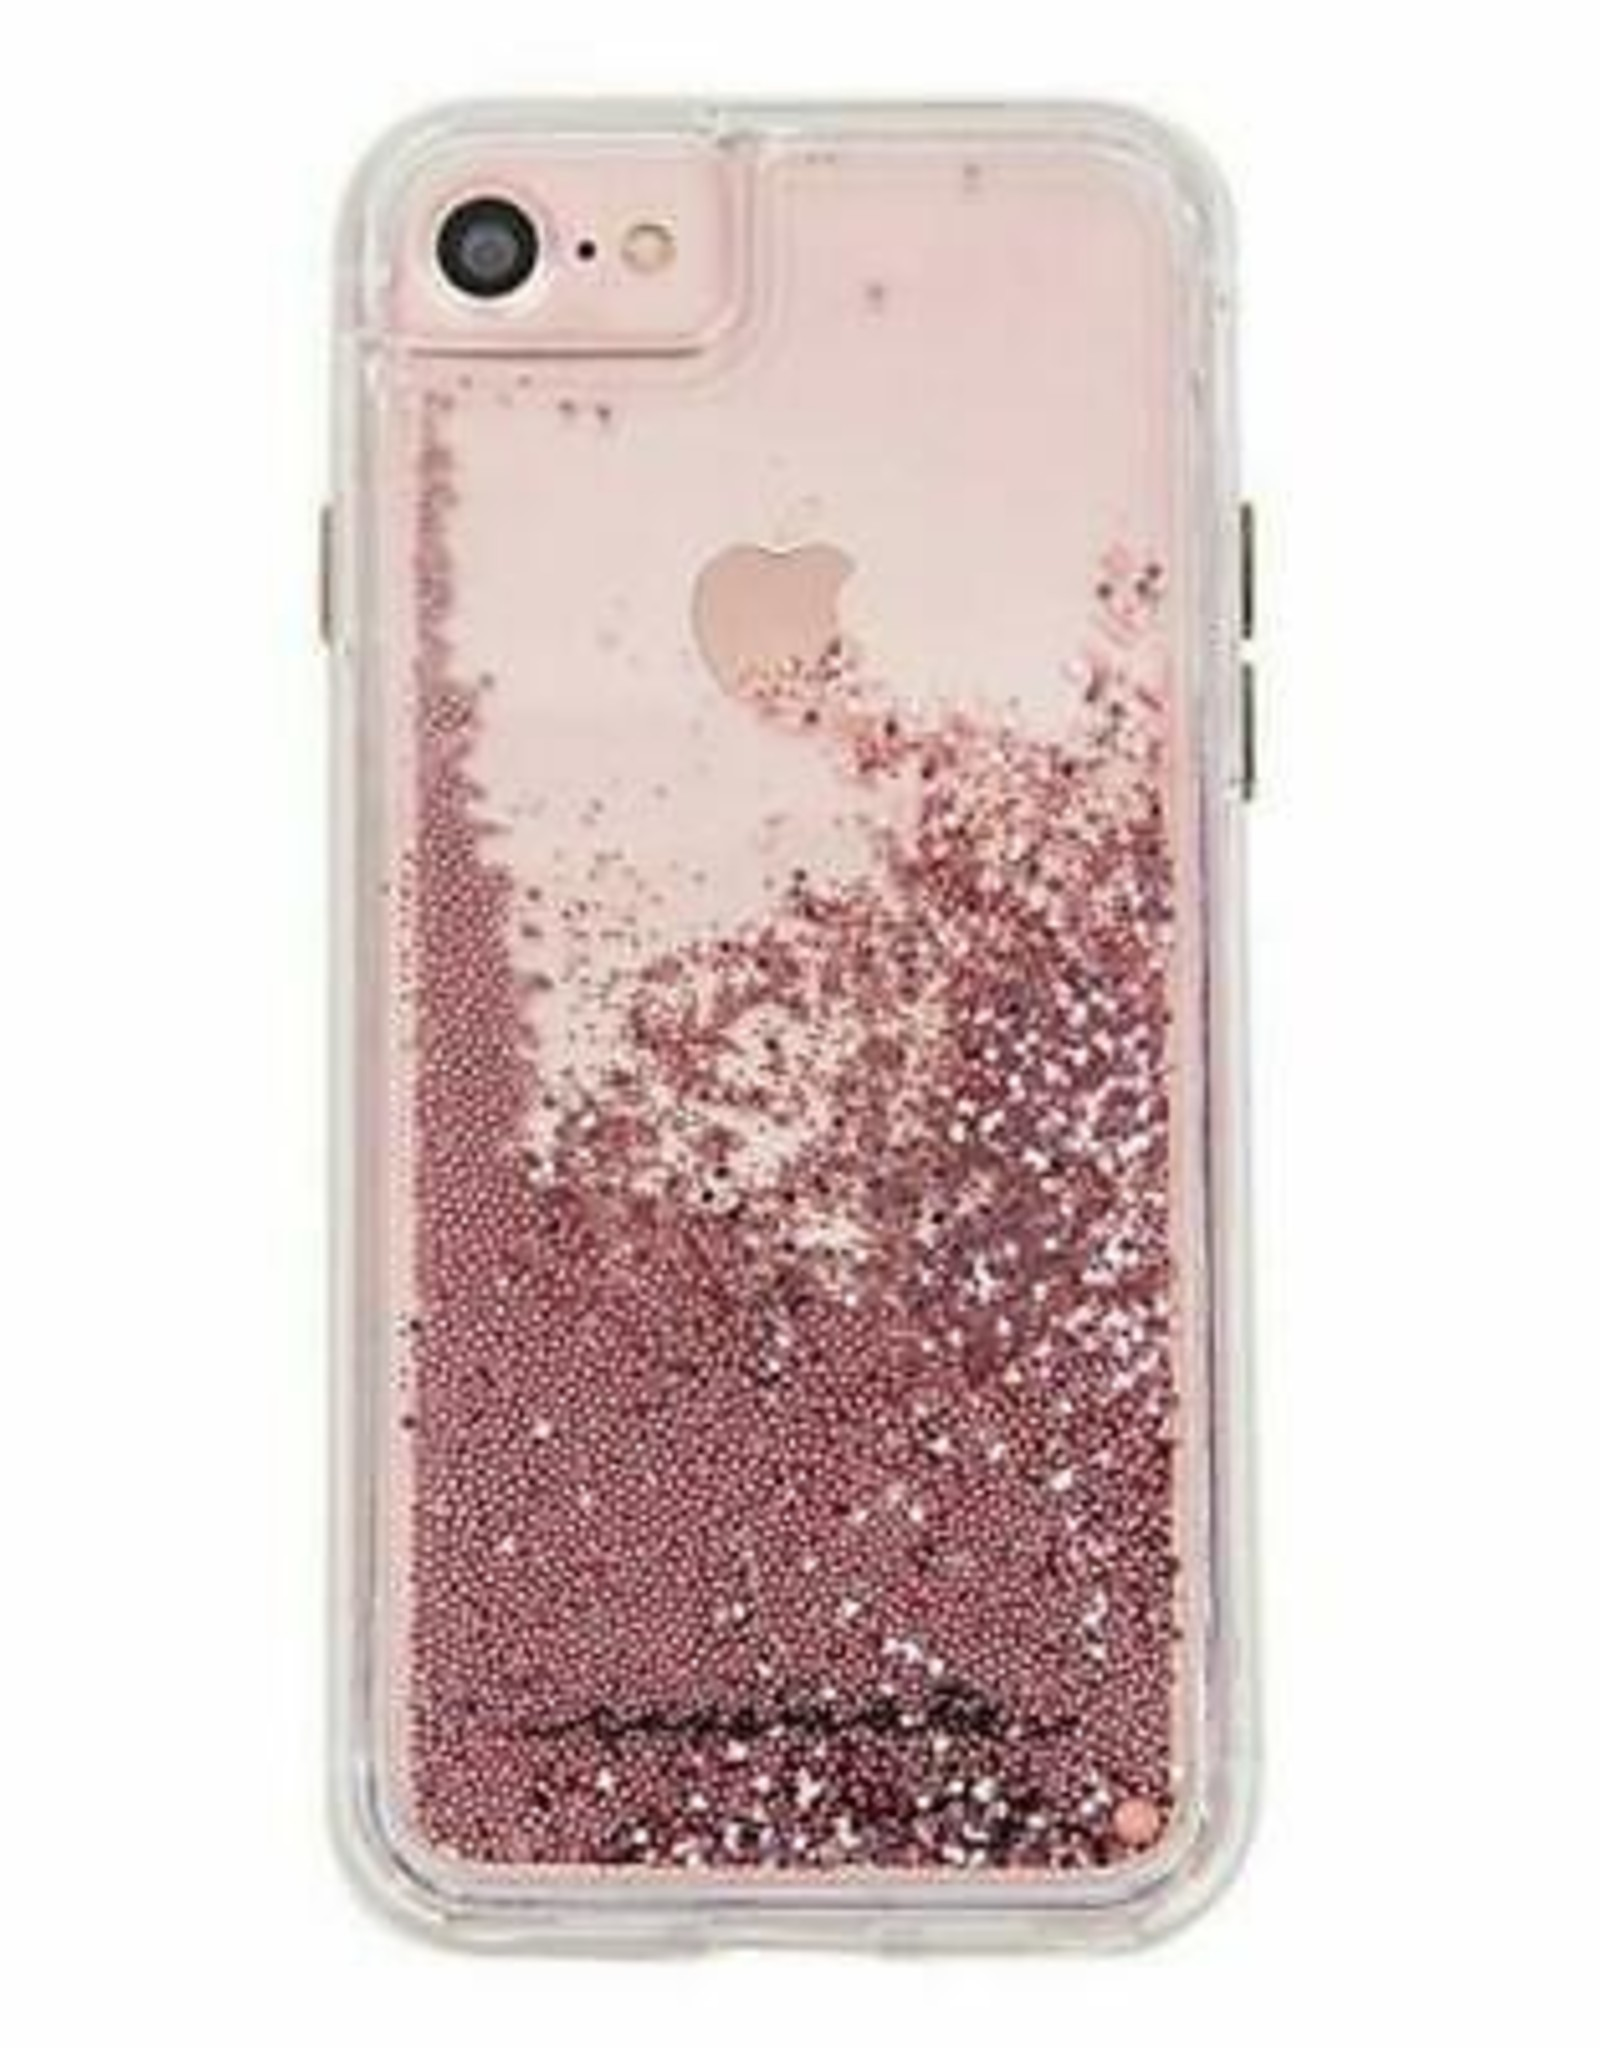 Case-Mate Case-Mate | iPhone 8/7/6S/6 Rose Gold Waterfall case 15-01069